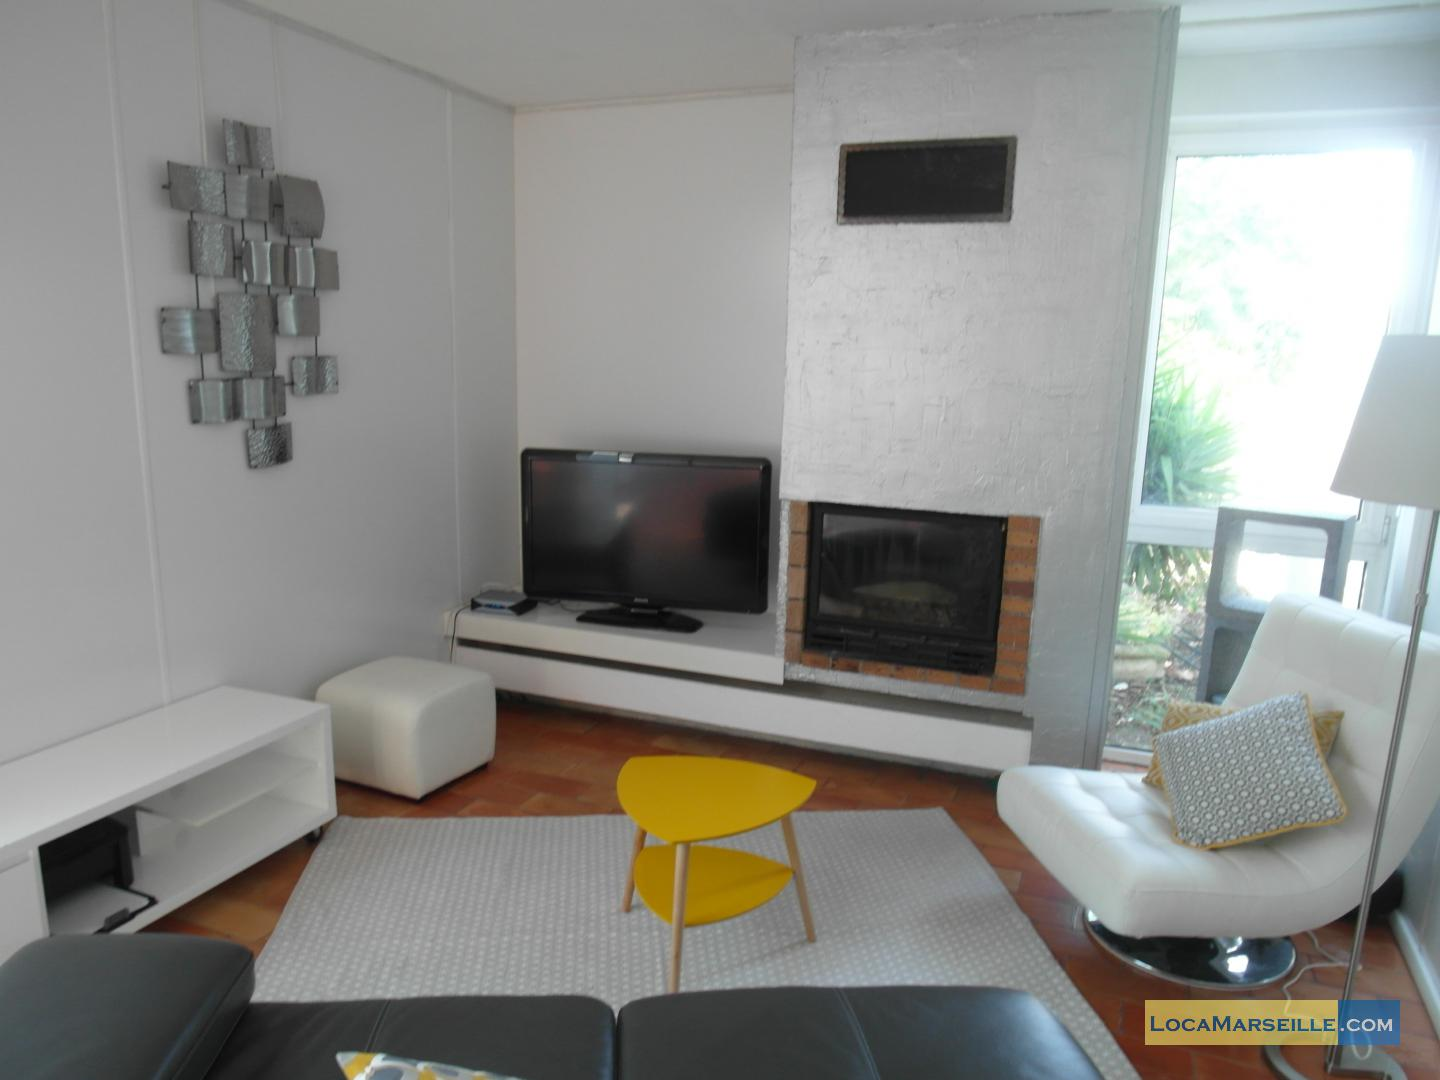 Furnished House Whis Swimming Pool To Rent In Marseille